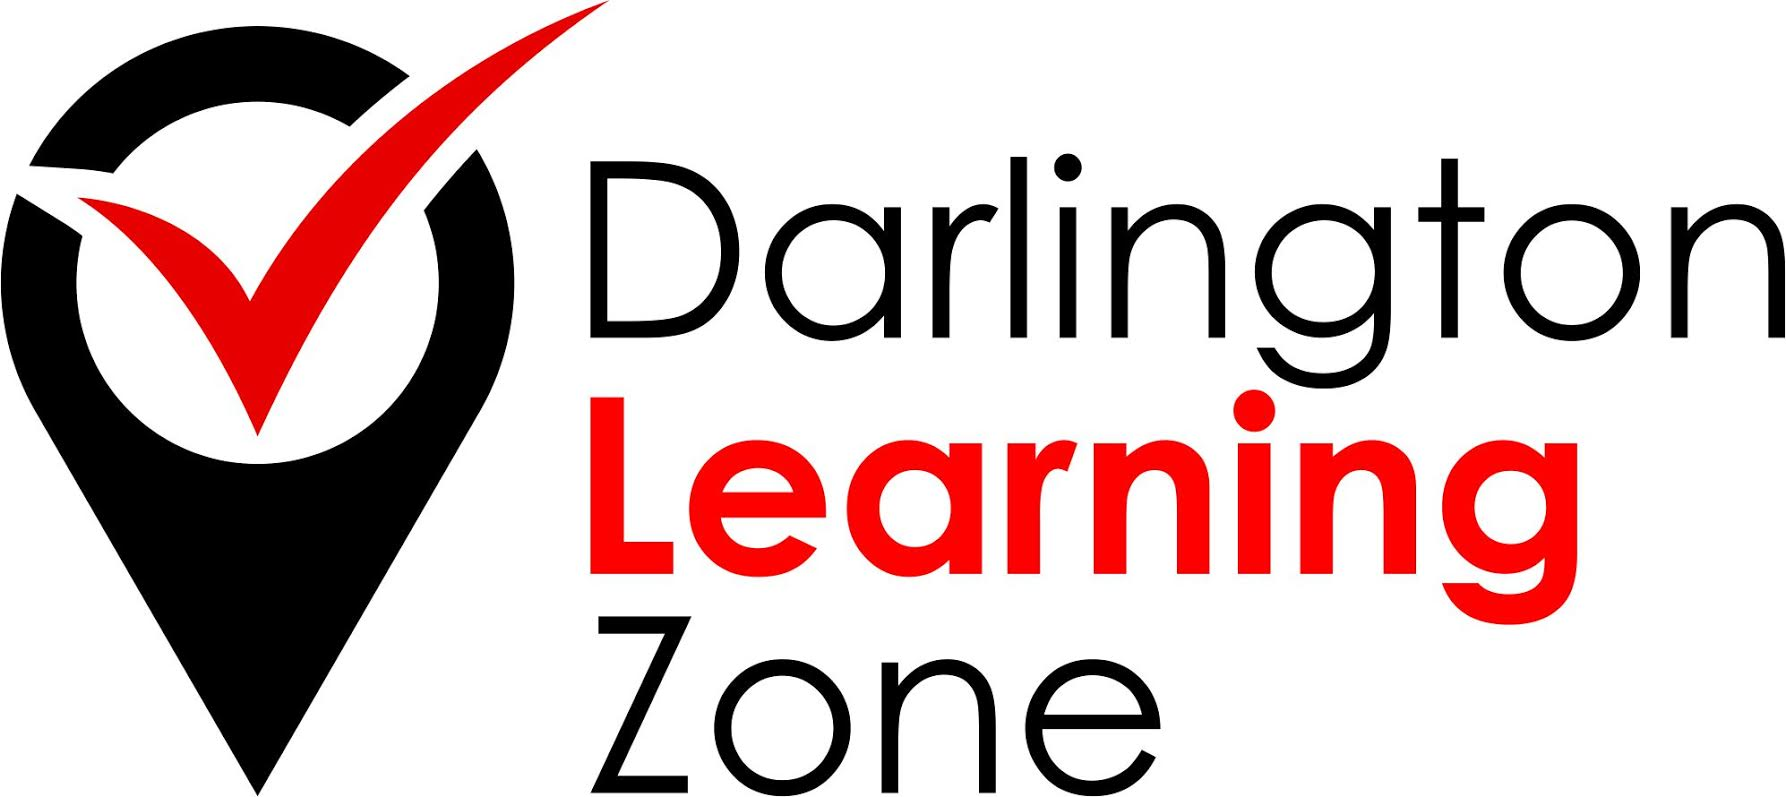 Darlington Learning Zone